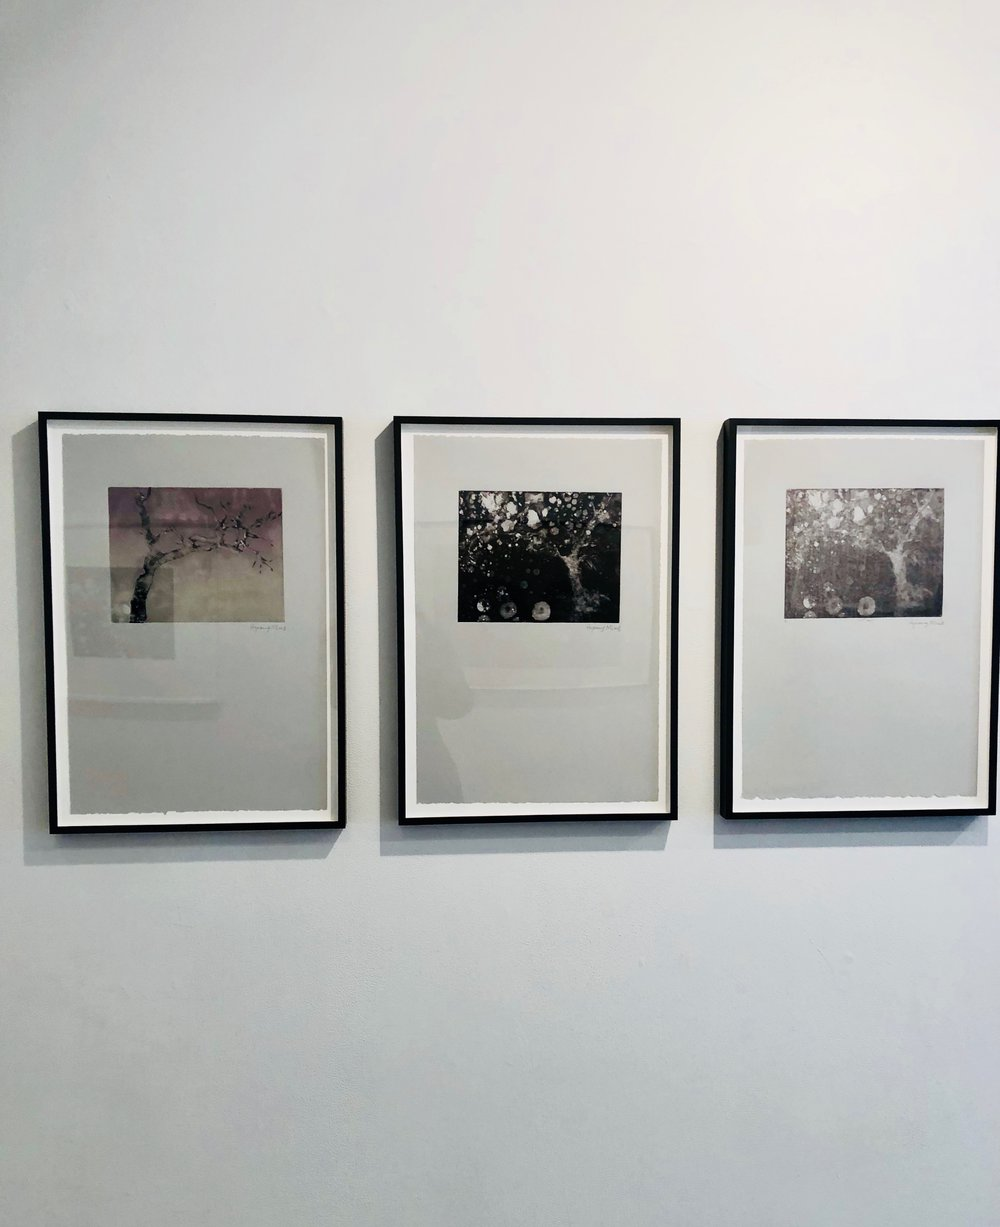 Installation view of Modern Prometheus with Works by Hyeseung Marriage-Song